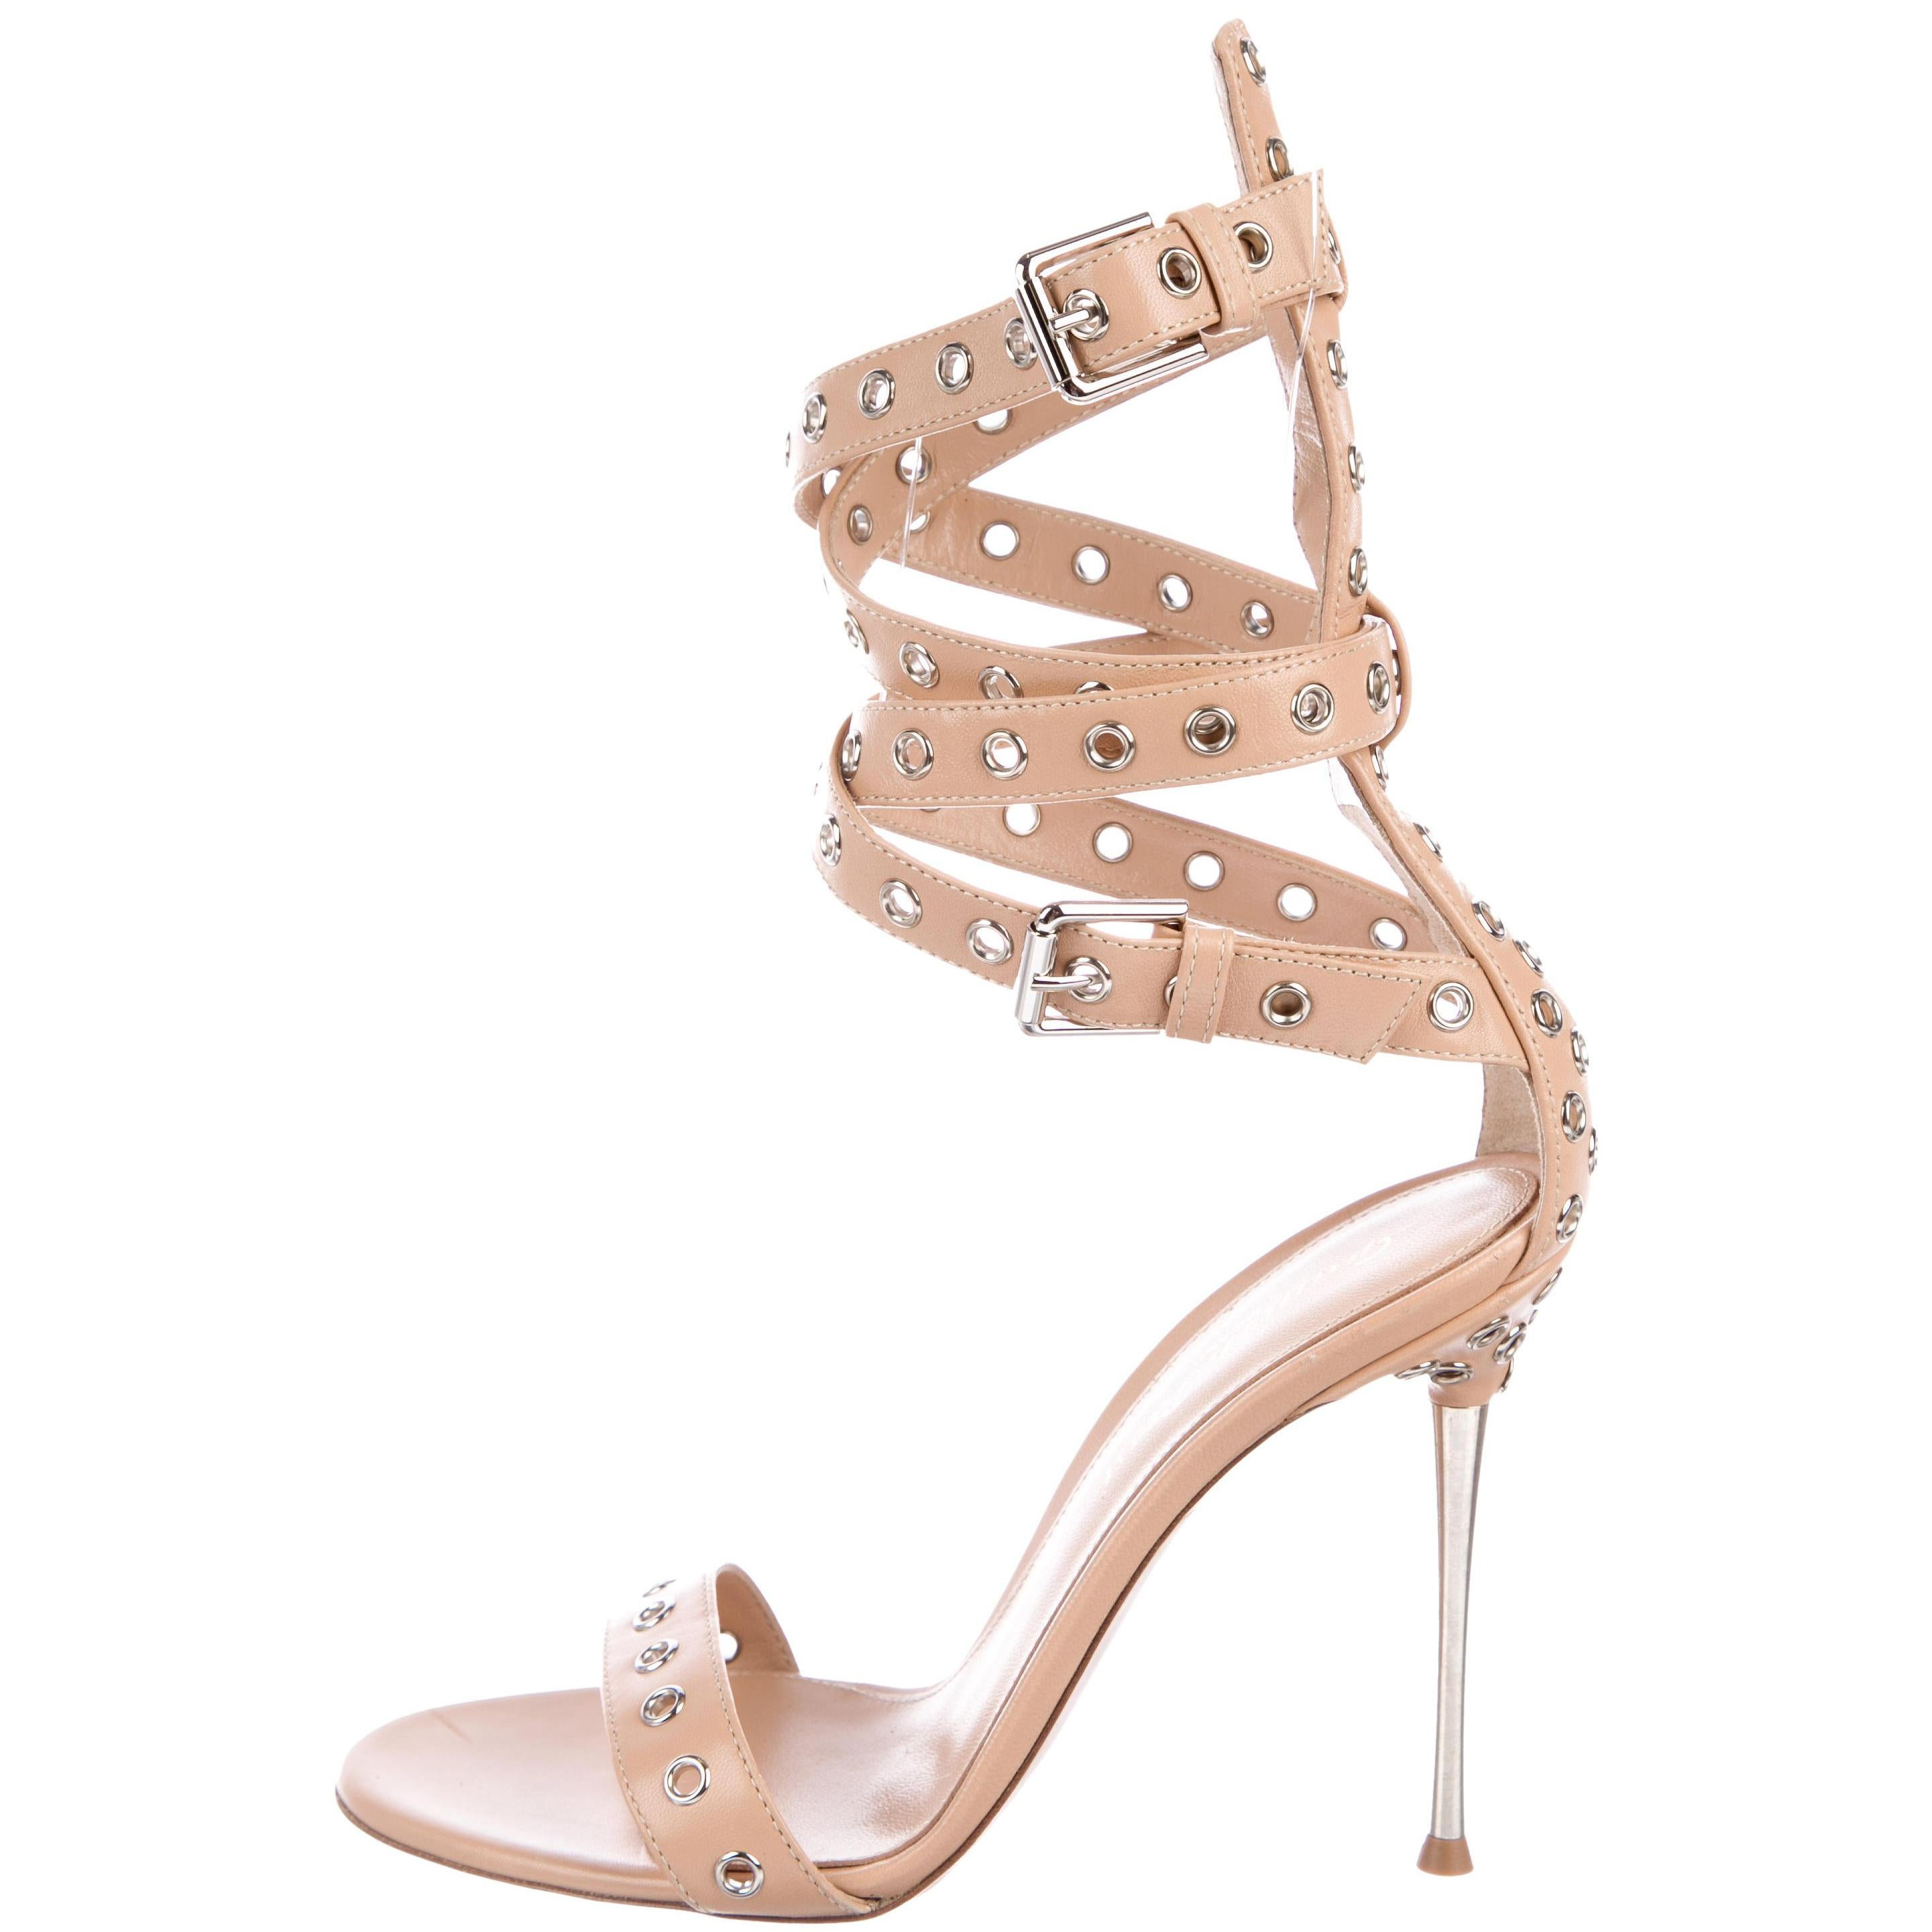 890a6b7ca Gianvito Rossi NEW Nude Leather Silver Evening Heels Sandals in Box For  Sale at 1stdibs